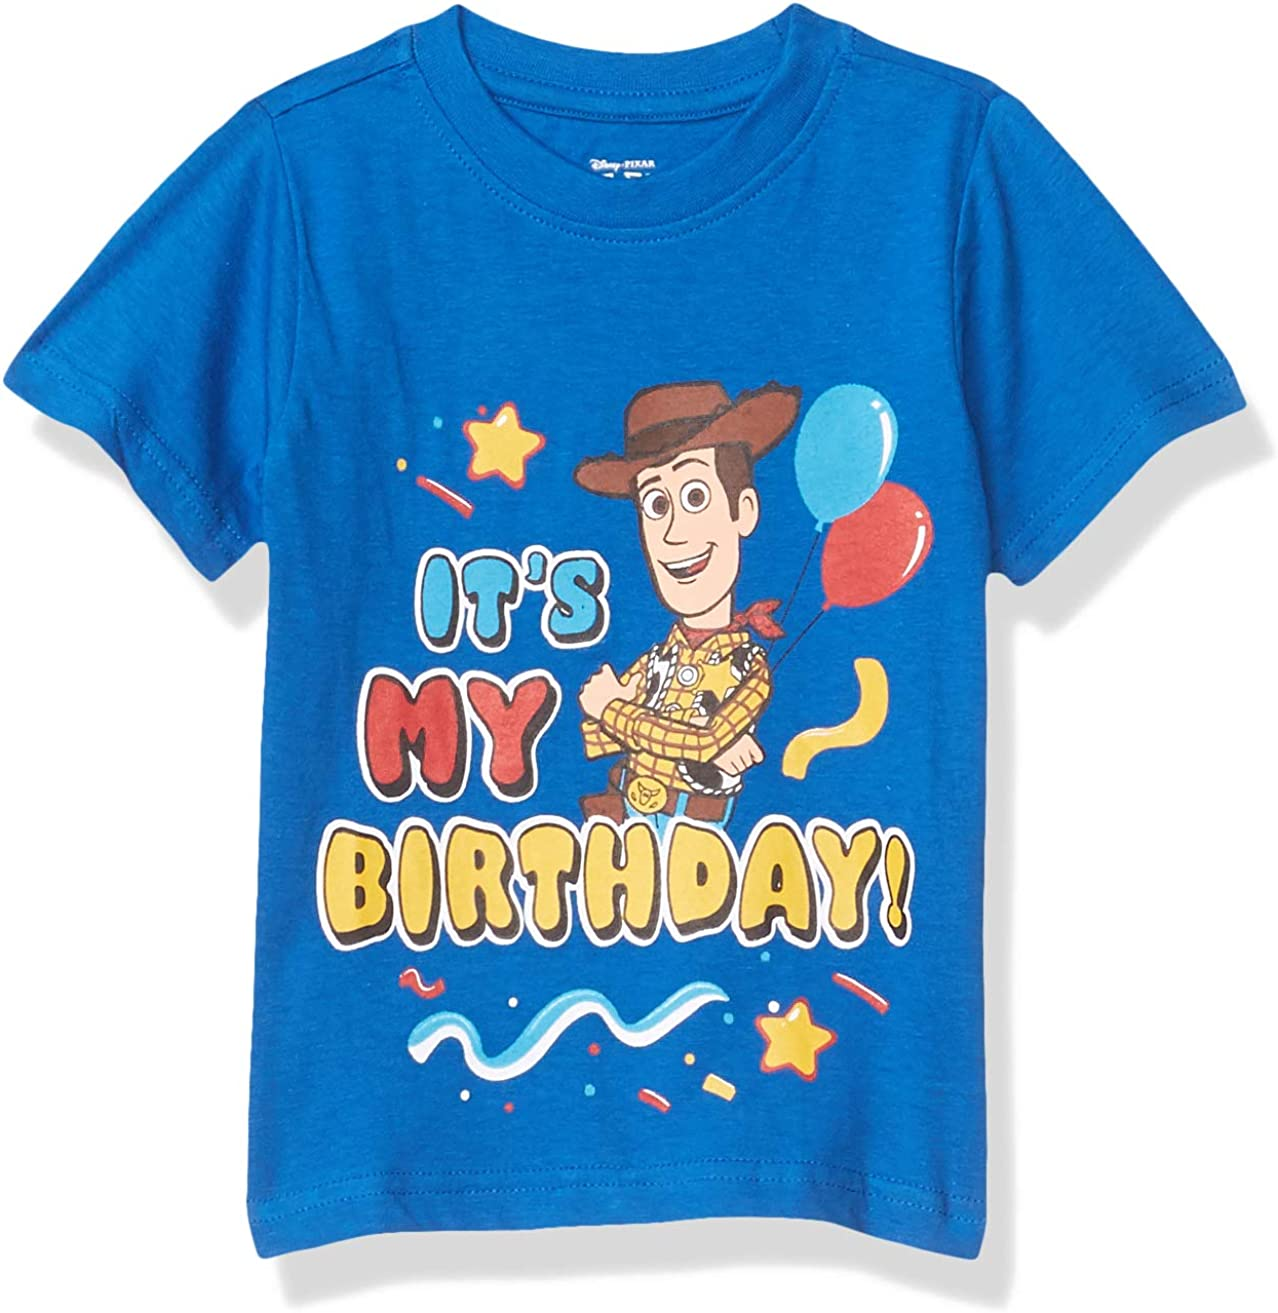 Disney Toy Story Boy's It's My Birthday Party Outfit Tee Shirt, 100% Cotton